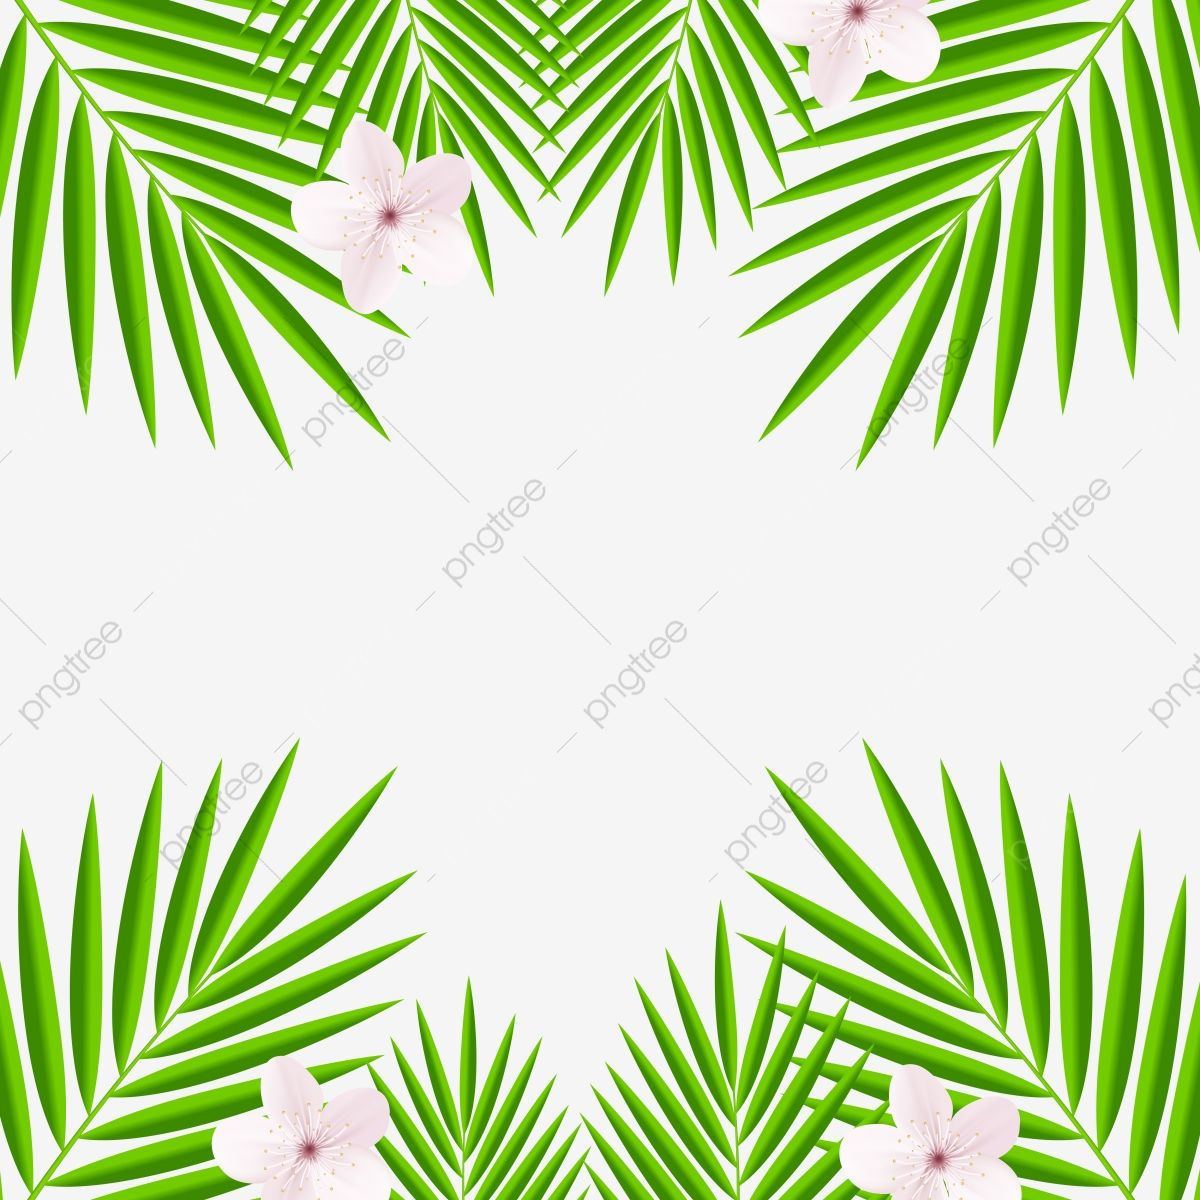 Forest Palm Leaves Green Tree Leaf Frame Tree Clipart Palm Leaf Png And Vector With Transparent Background For Free Download Green Trees Tree Leaves Palm Leaves